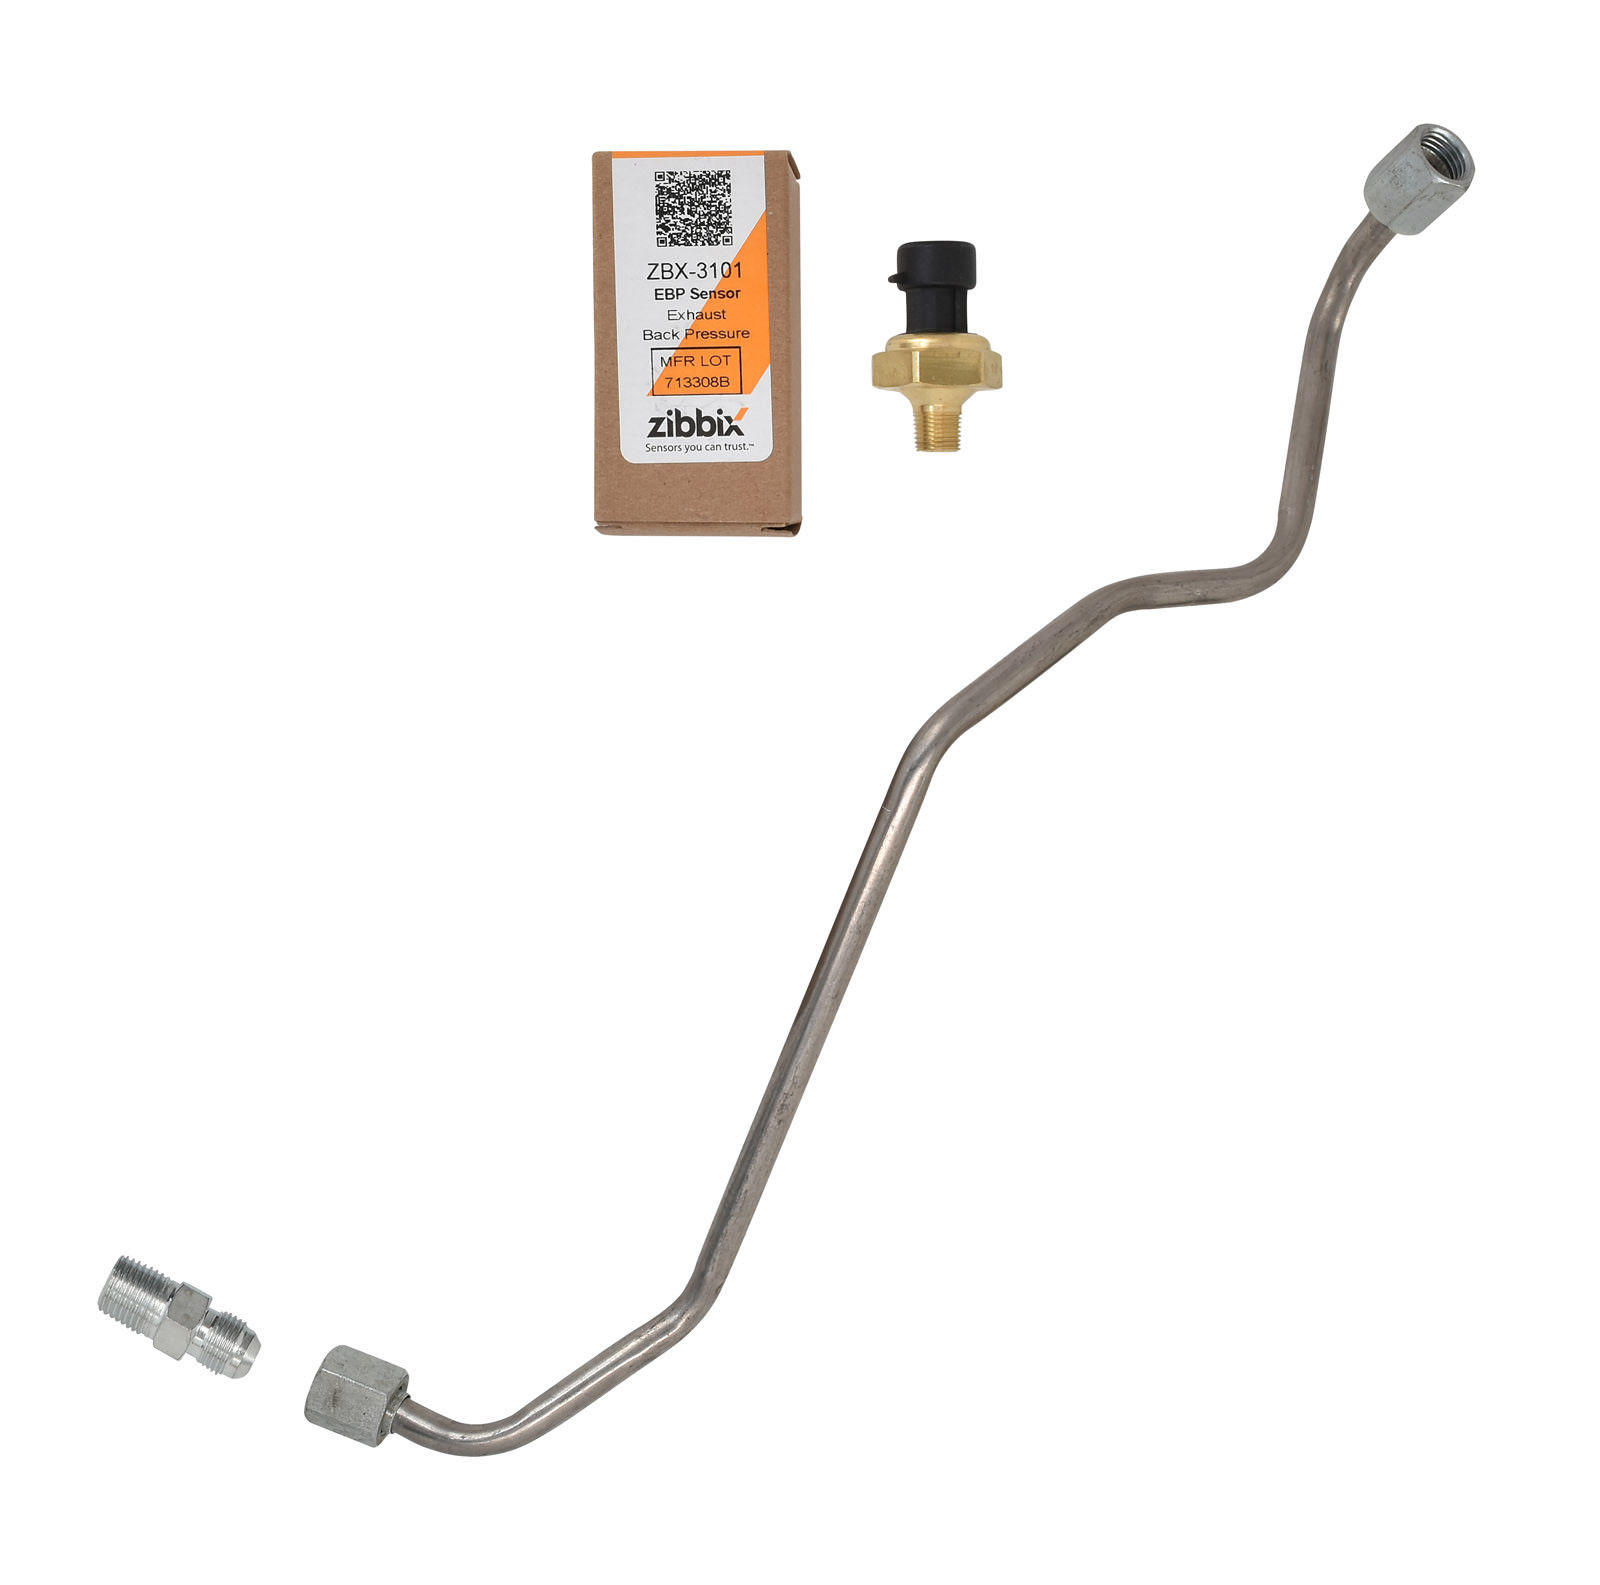 Zibbix ZBX-3101-TK2 EBP Exhaust Back Pressure Sensor Tube Kit For 99-03 7.3L Ford Powerstroke Diesel